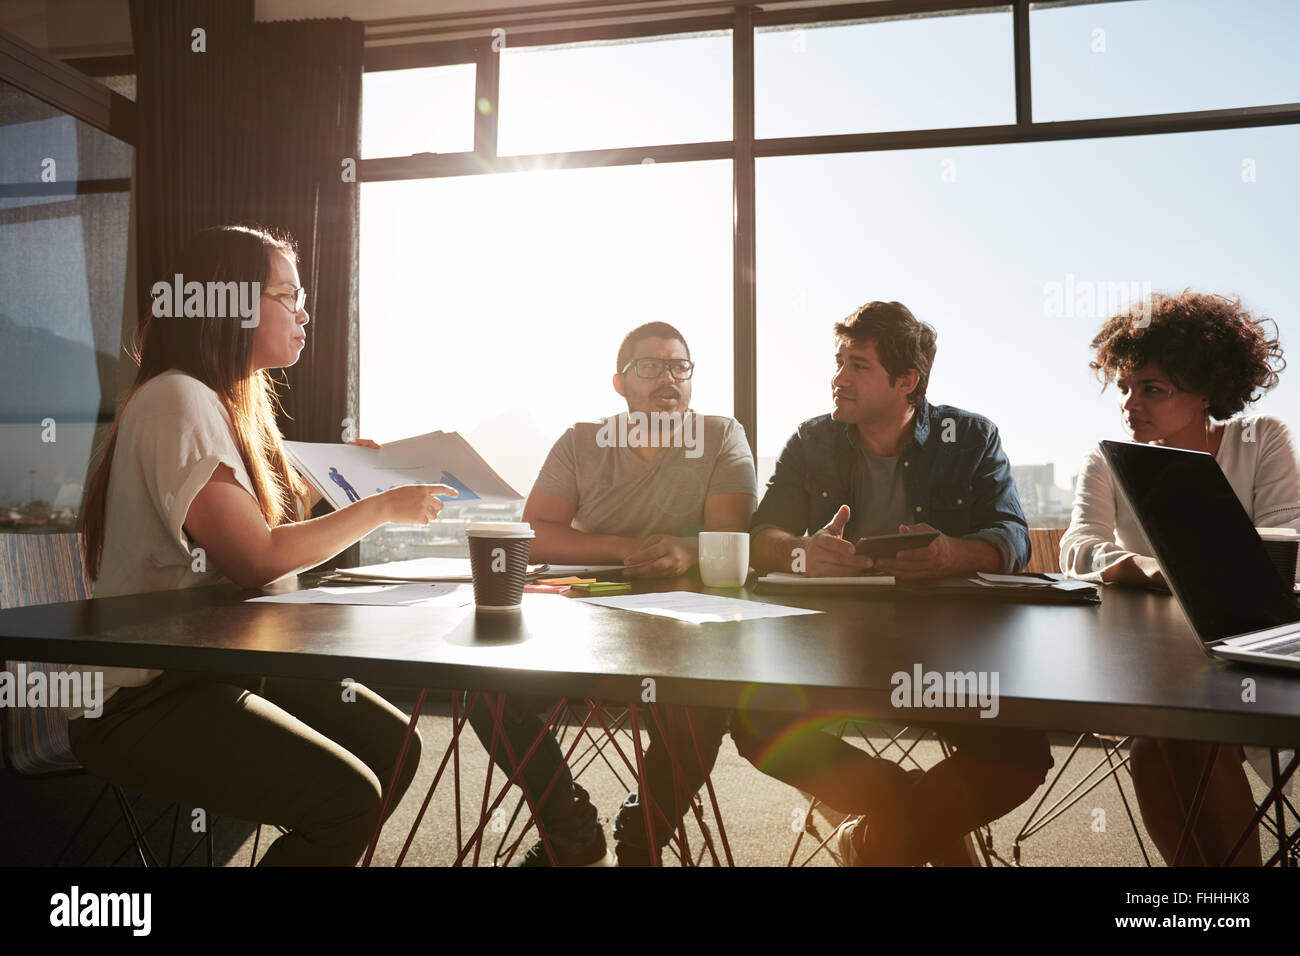 Young business woman consulting new business plans with her colleagues. Creative people discussing documents and - Stock Image